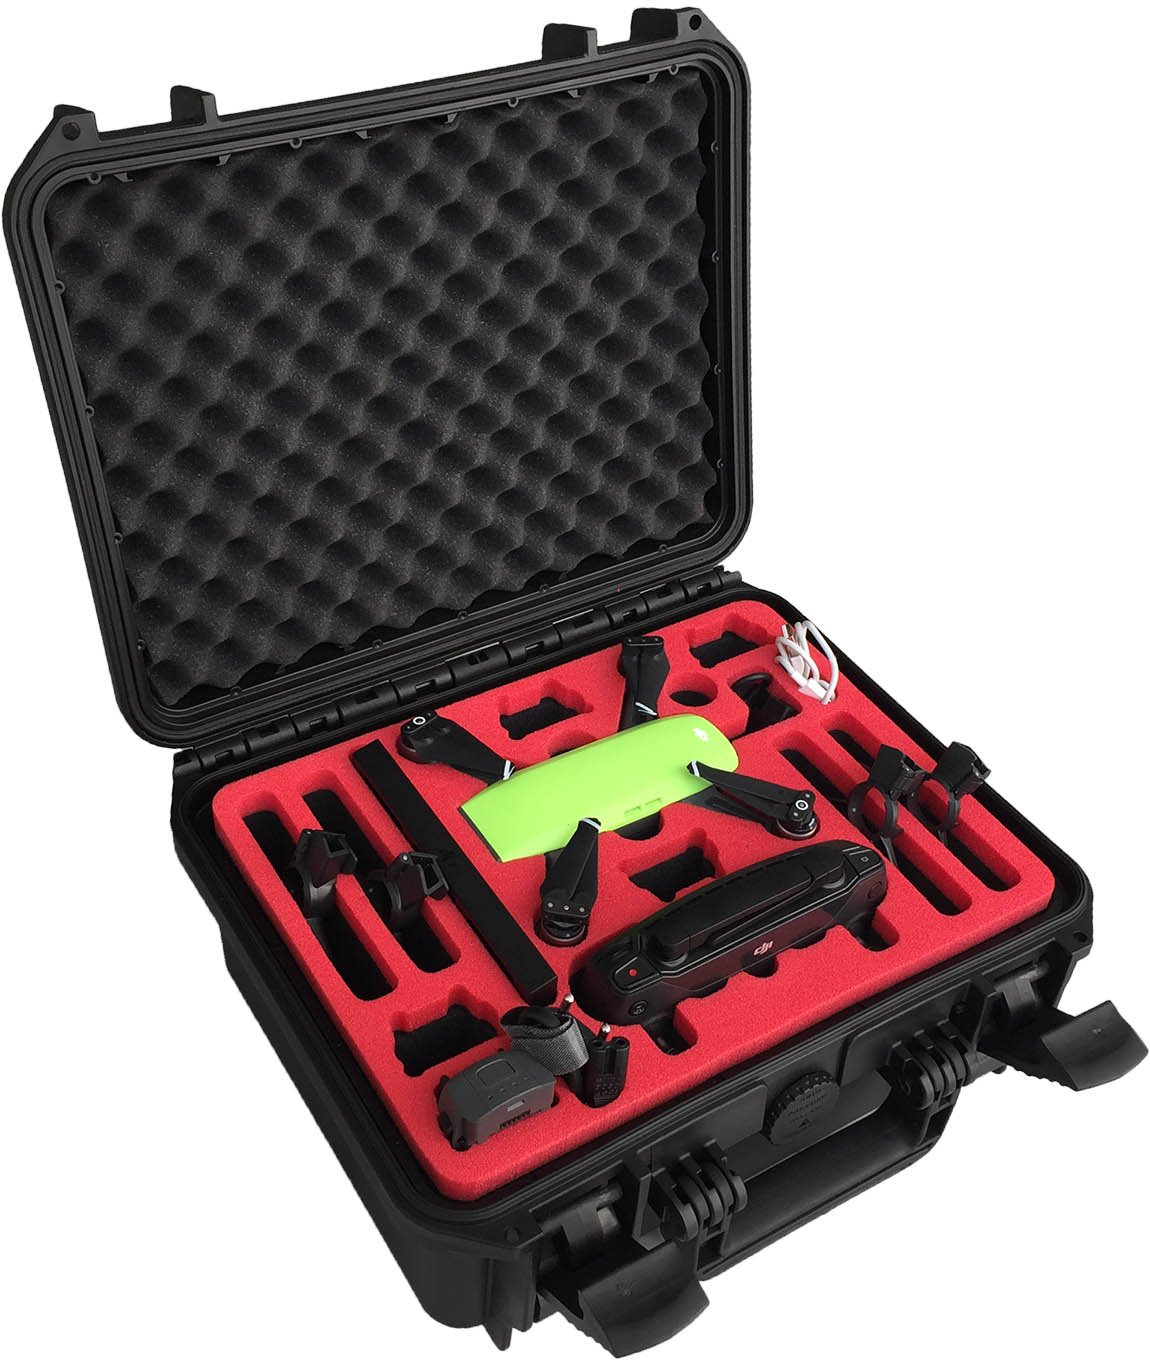 Professional Carrying Case for DJI Spark with Space for 6 Batteries and More Accessories (MC-Cases FlyMore Explorer Edition) MCC-SPARK-1EX